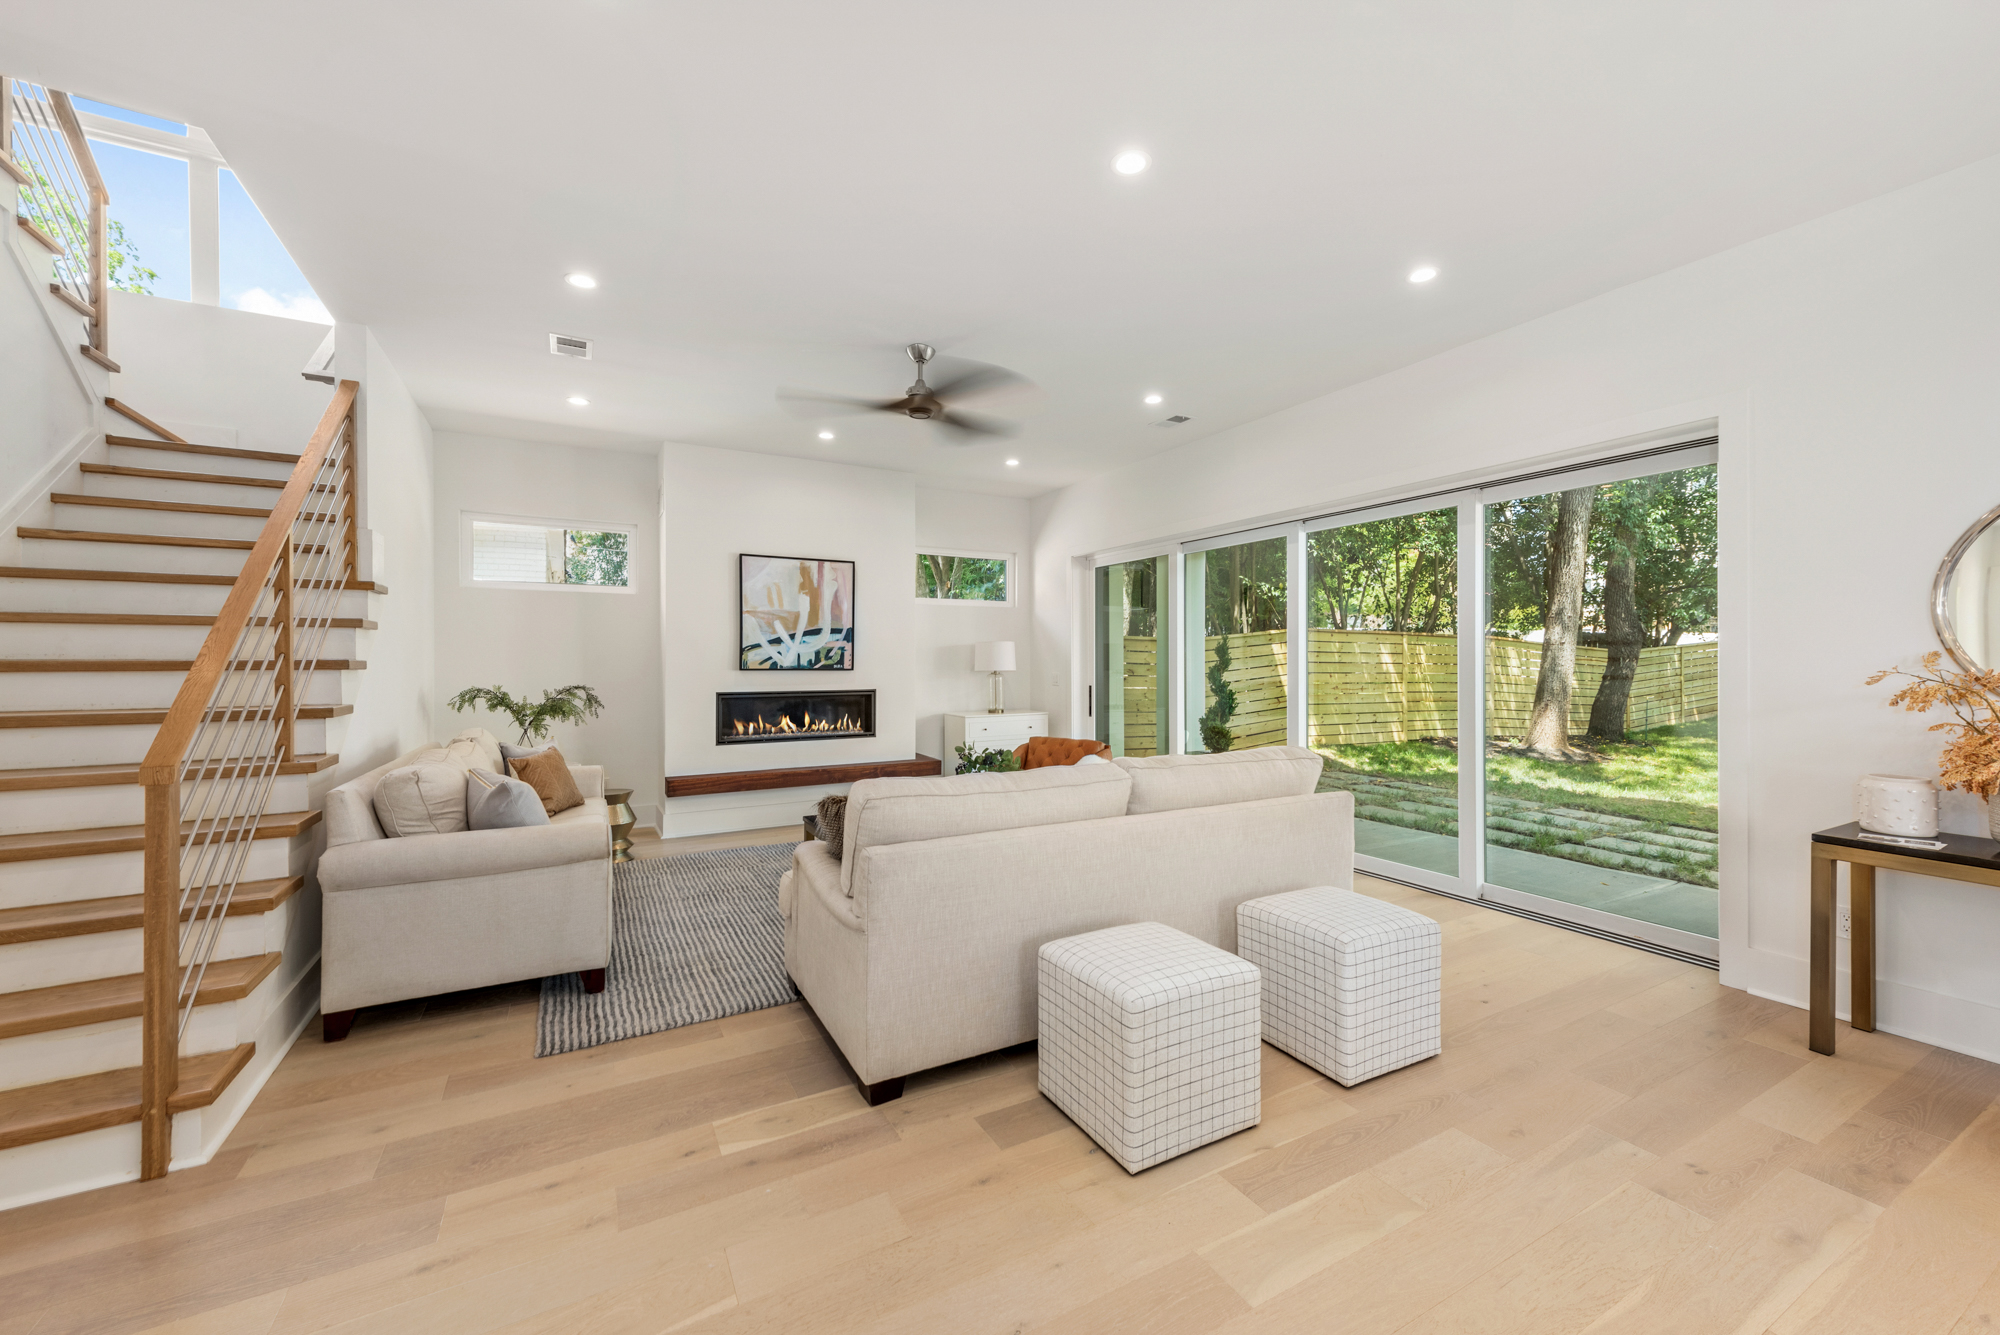 Two available homes to put some WOW in your weekend